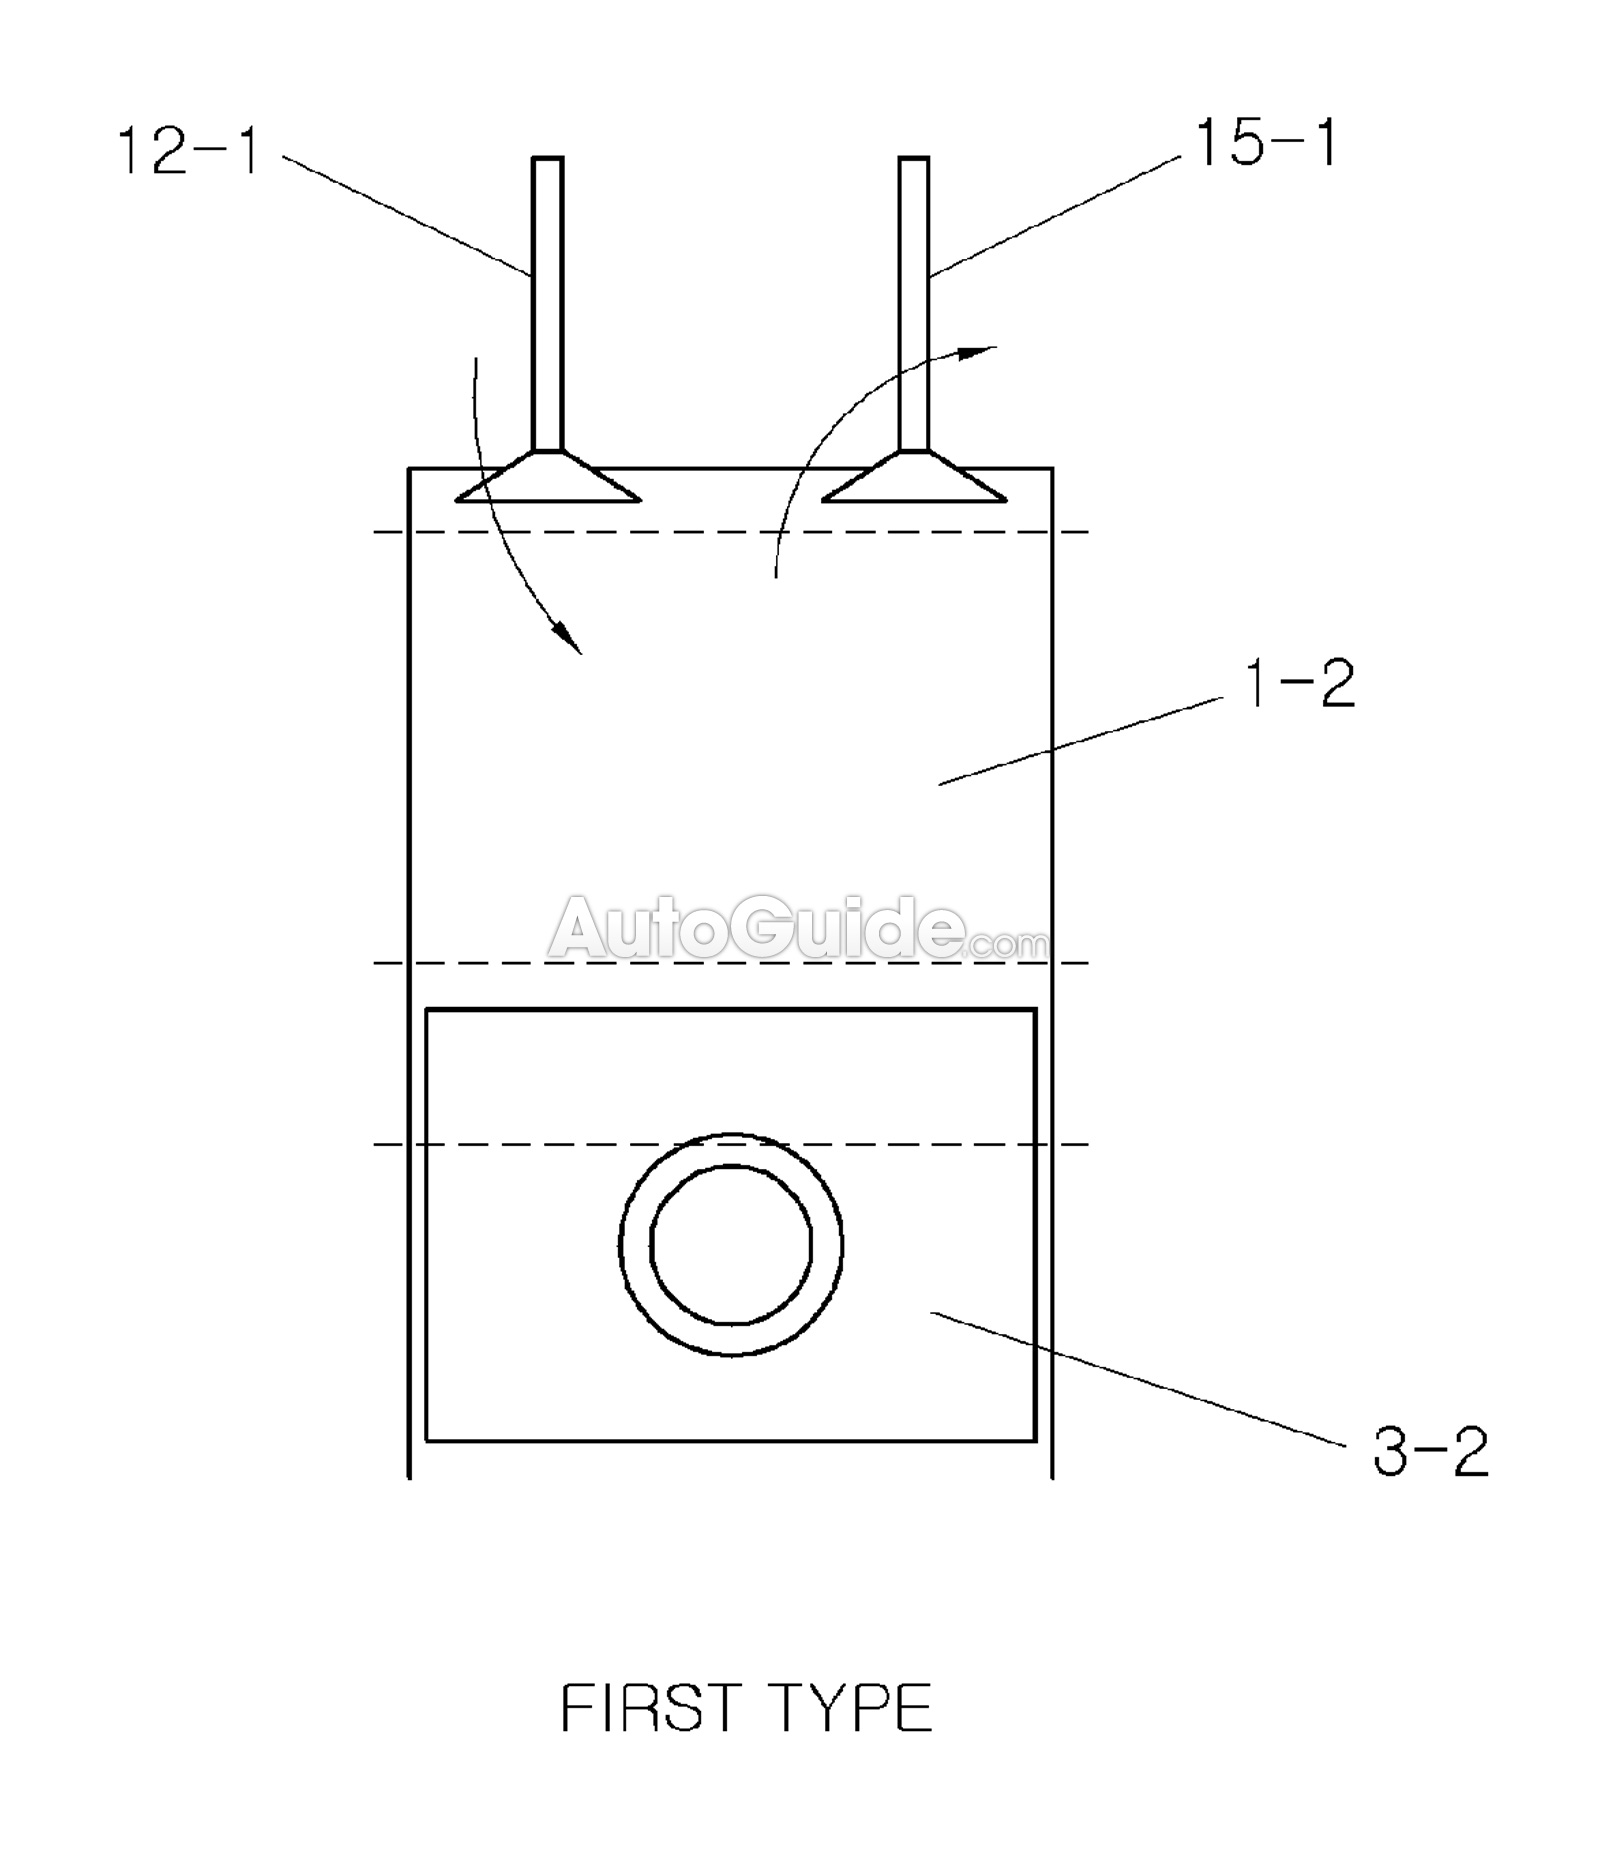 Hyundai Patents An Engine With Different Size Cylinders Autoguide Diagram Four Cylinder Patent 08